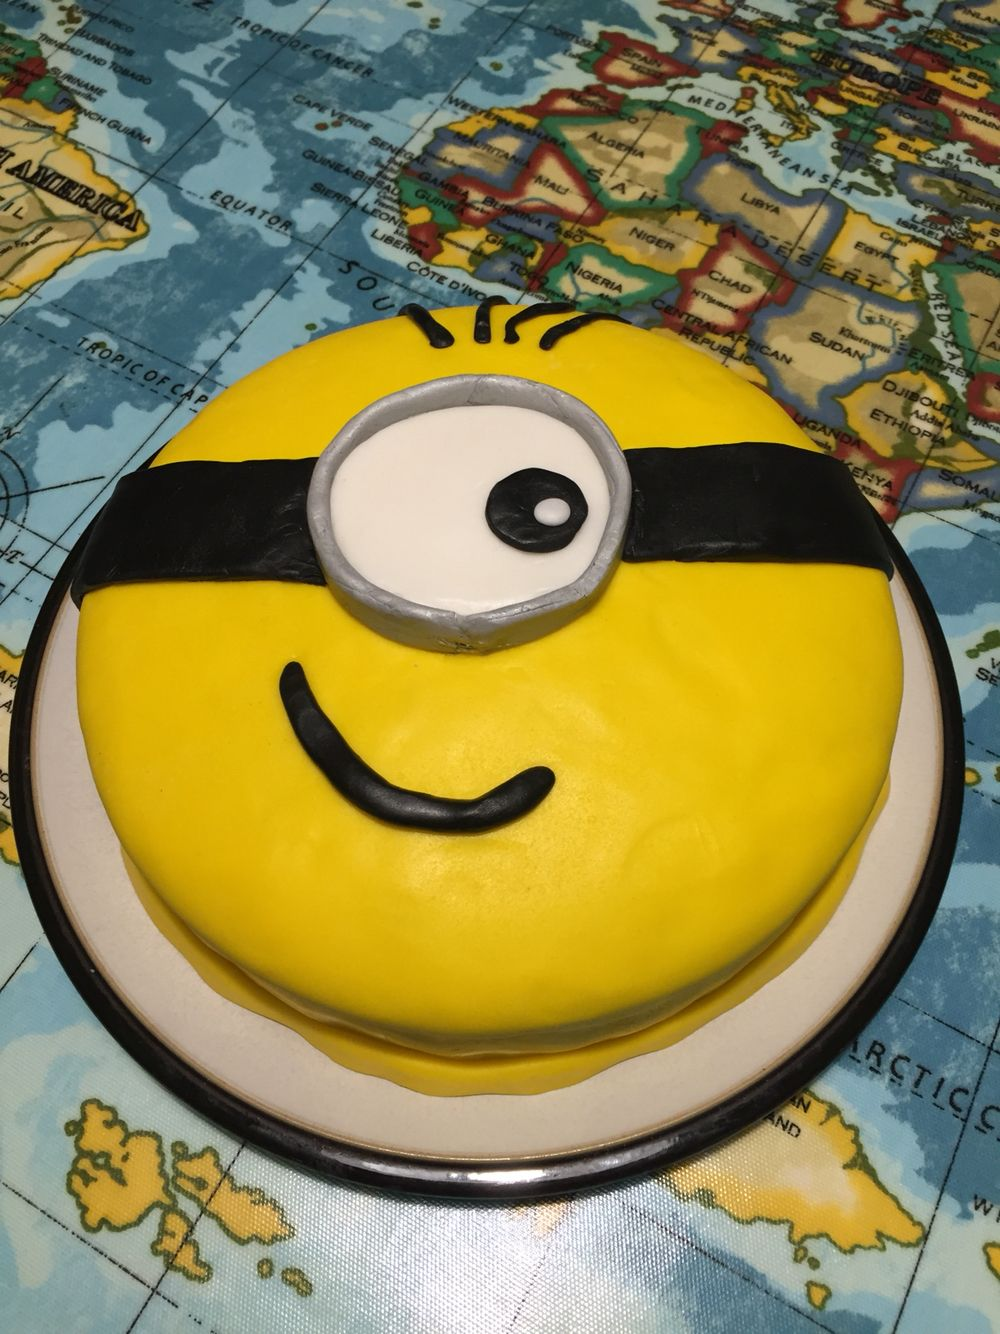 Calebs th birthday cake cake decorations and tips pinterest